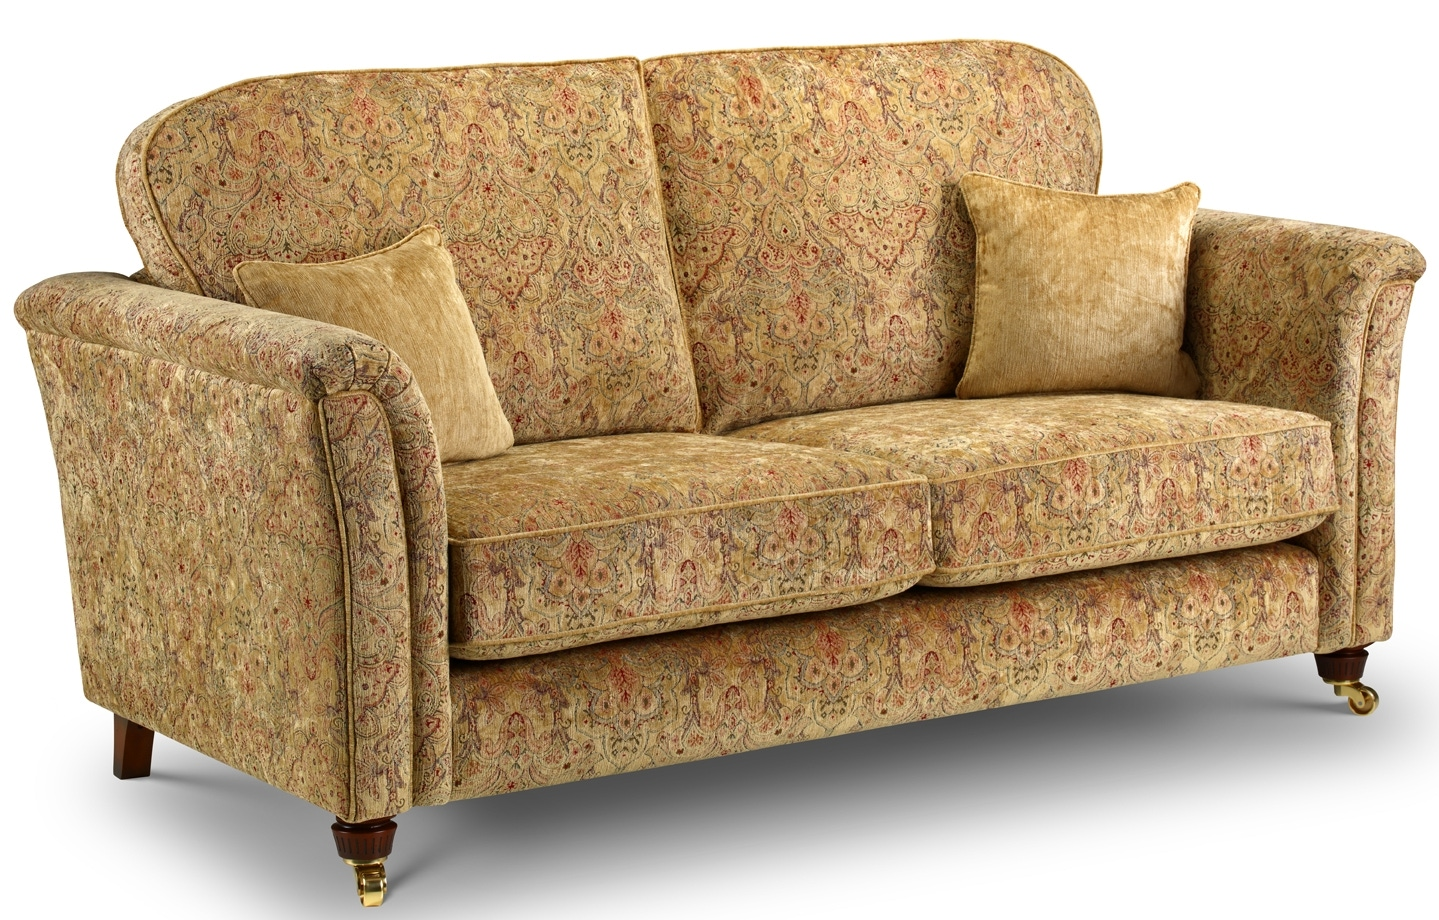 Imperiale Damask sofa